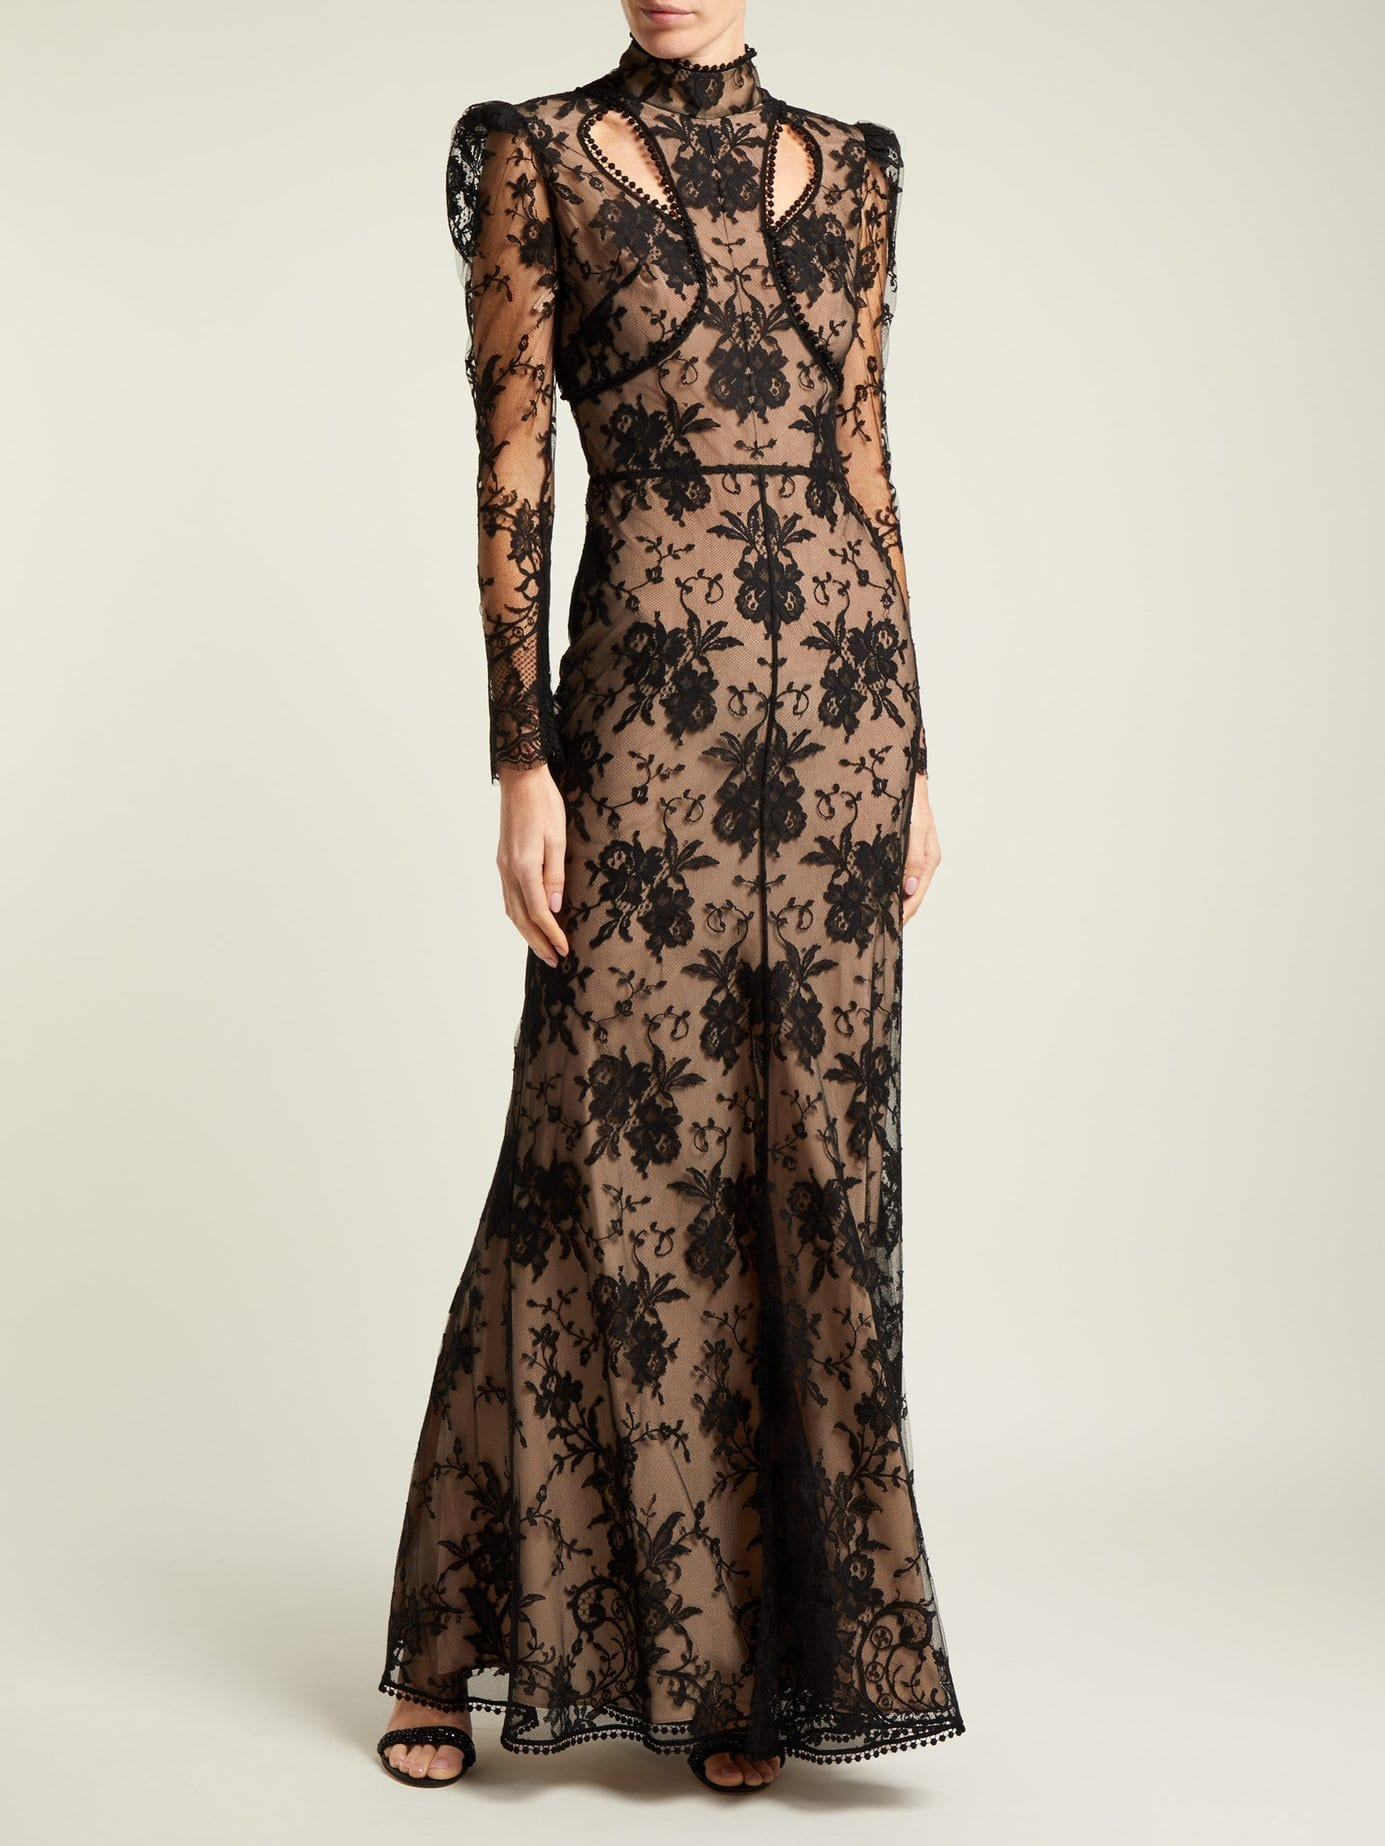 ALEXANDER MCQUEEN Cut Out Floral Lace Black Gown - We Select Dresses